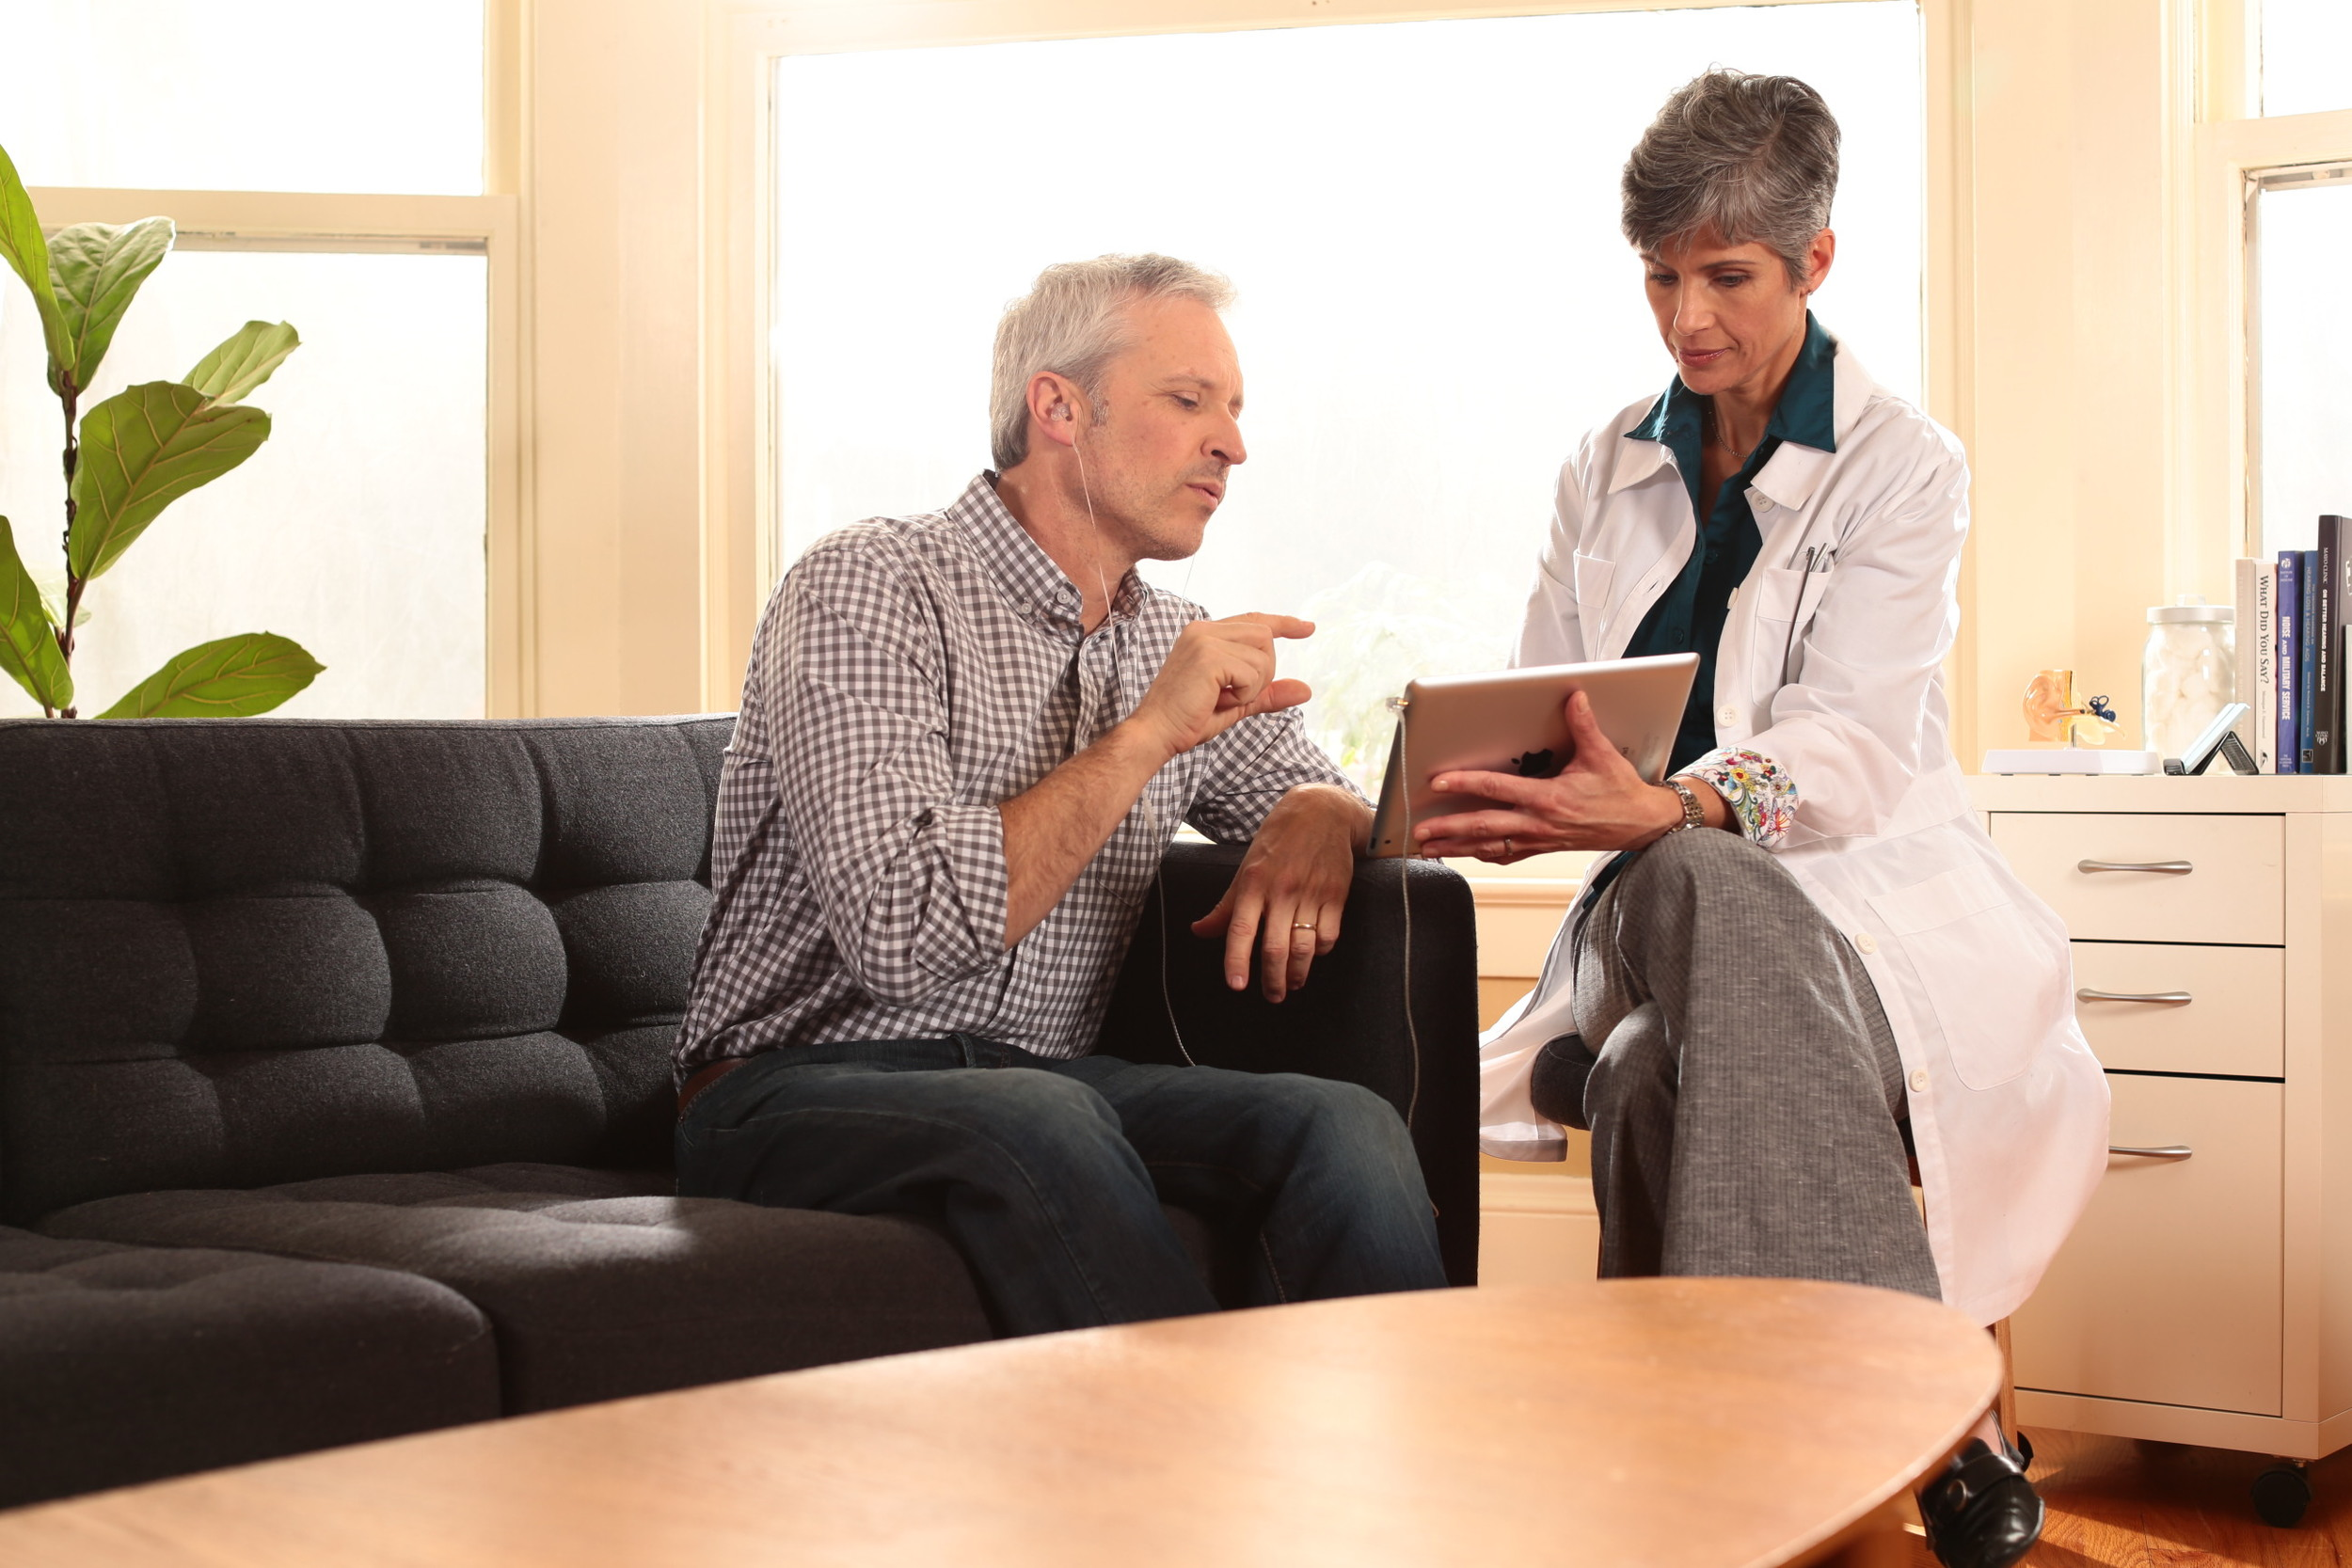 Patient and hearing professional using the Levo System for tinnitus sound therapy